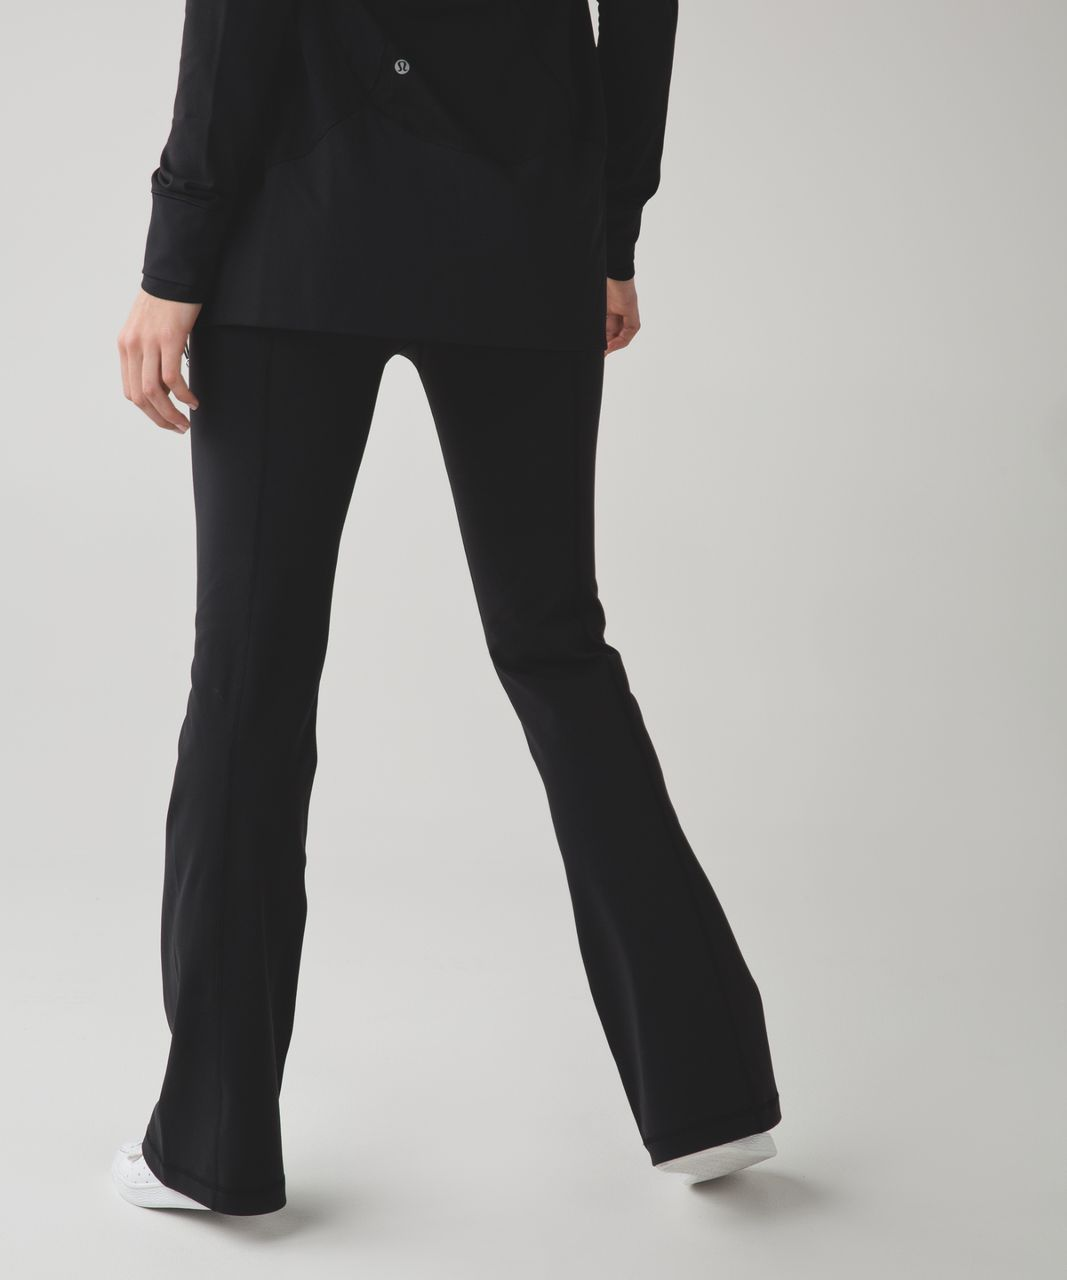 Lululemon Groove Pant III (Regular) - Black / Tonka Stripe Black White